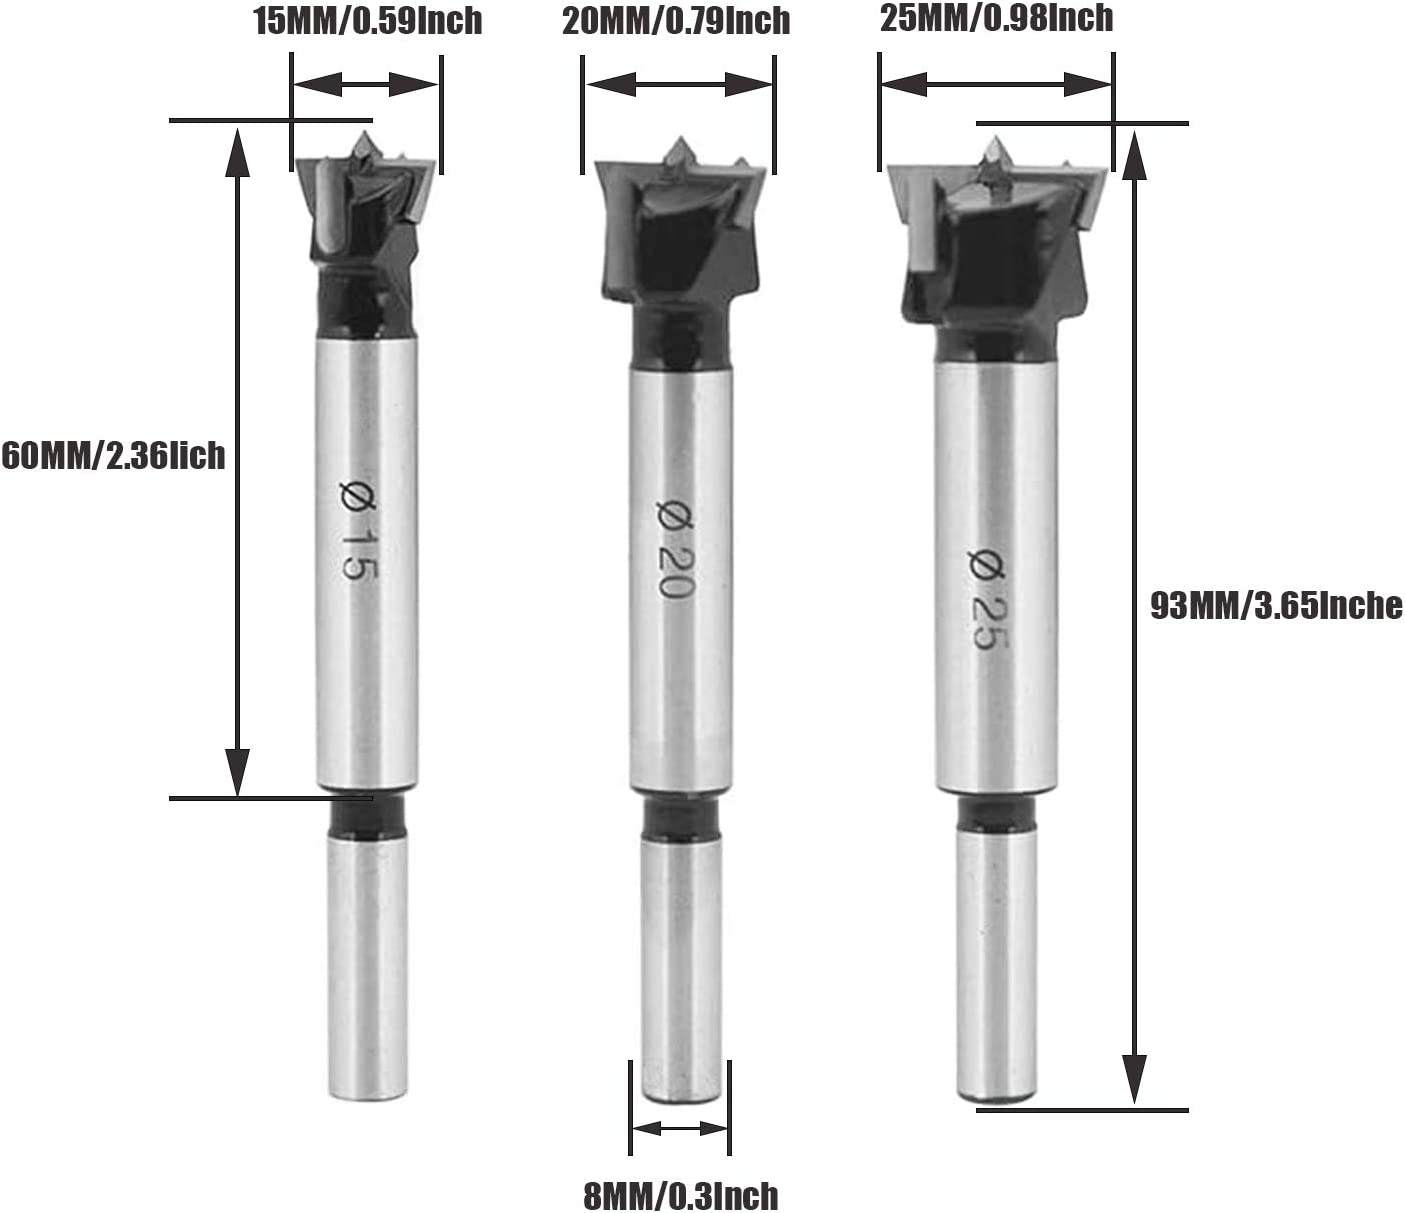 20 Size H6 Pitch Diameter High-Speed Steel HPT 30691 Thread Forming Fractional High Performance Taps Plug Style Bright Finish DIN Length 1//4